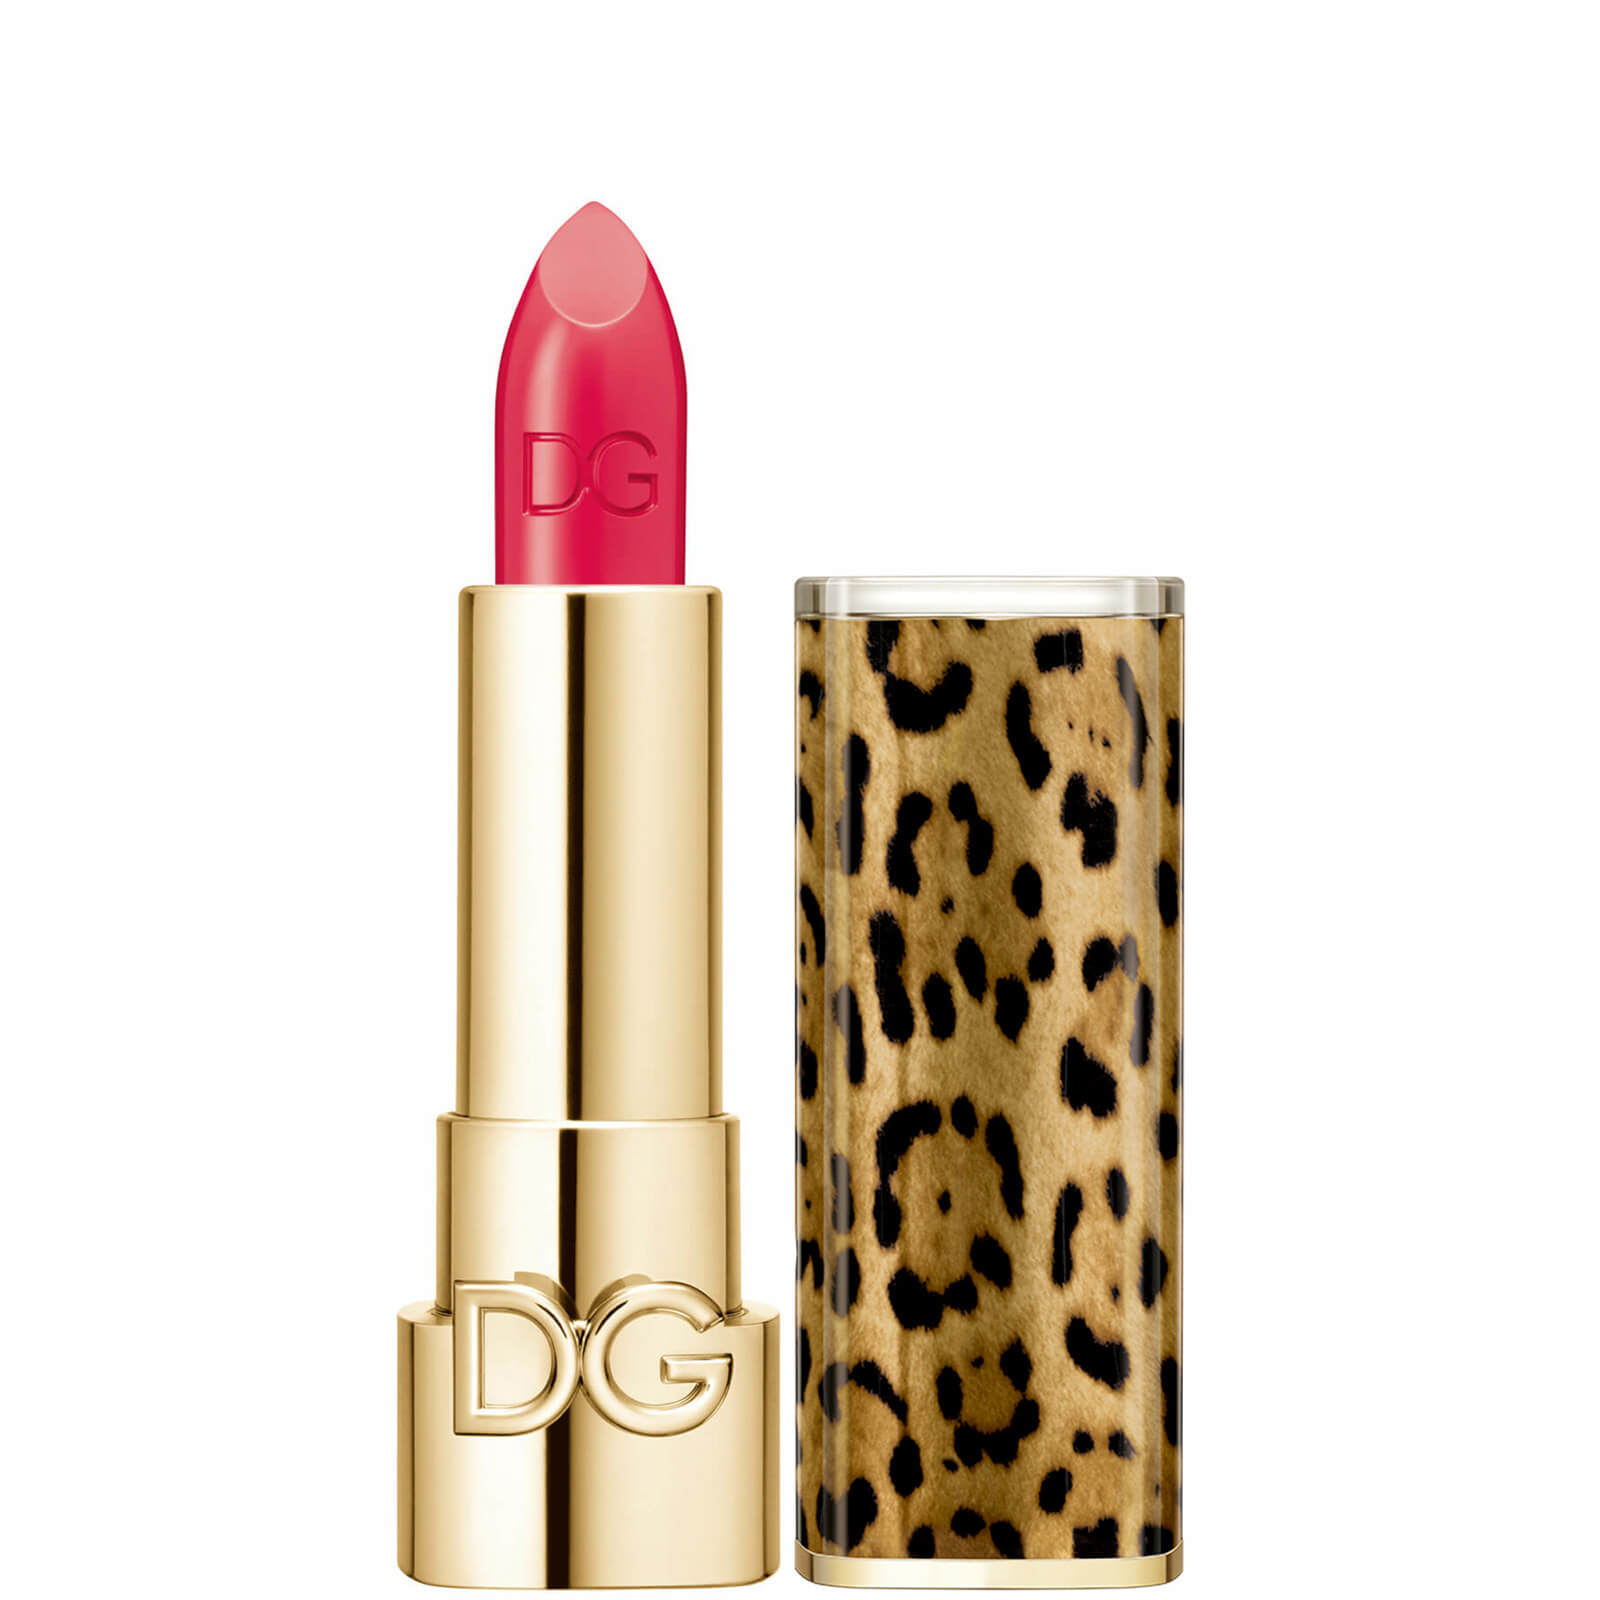 Dolce&Gabbana The Only One Lipstick + Cap (Animalier) (Various Shades) - 260 Pink Lady